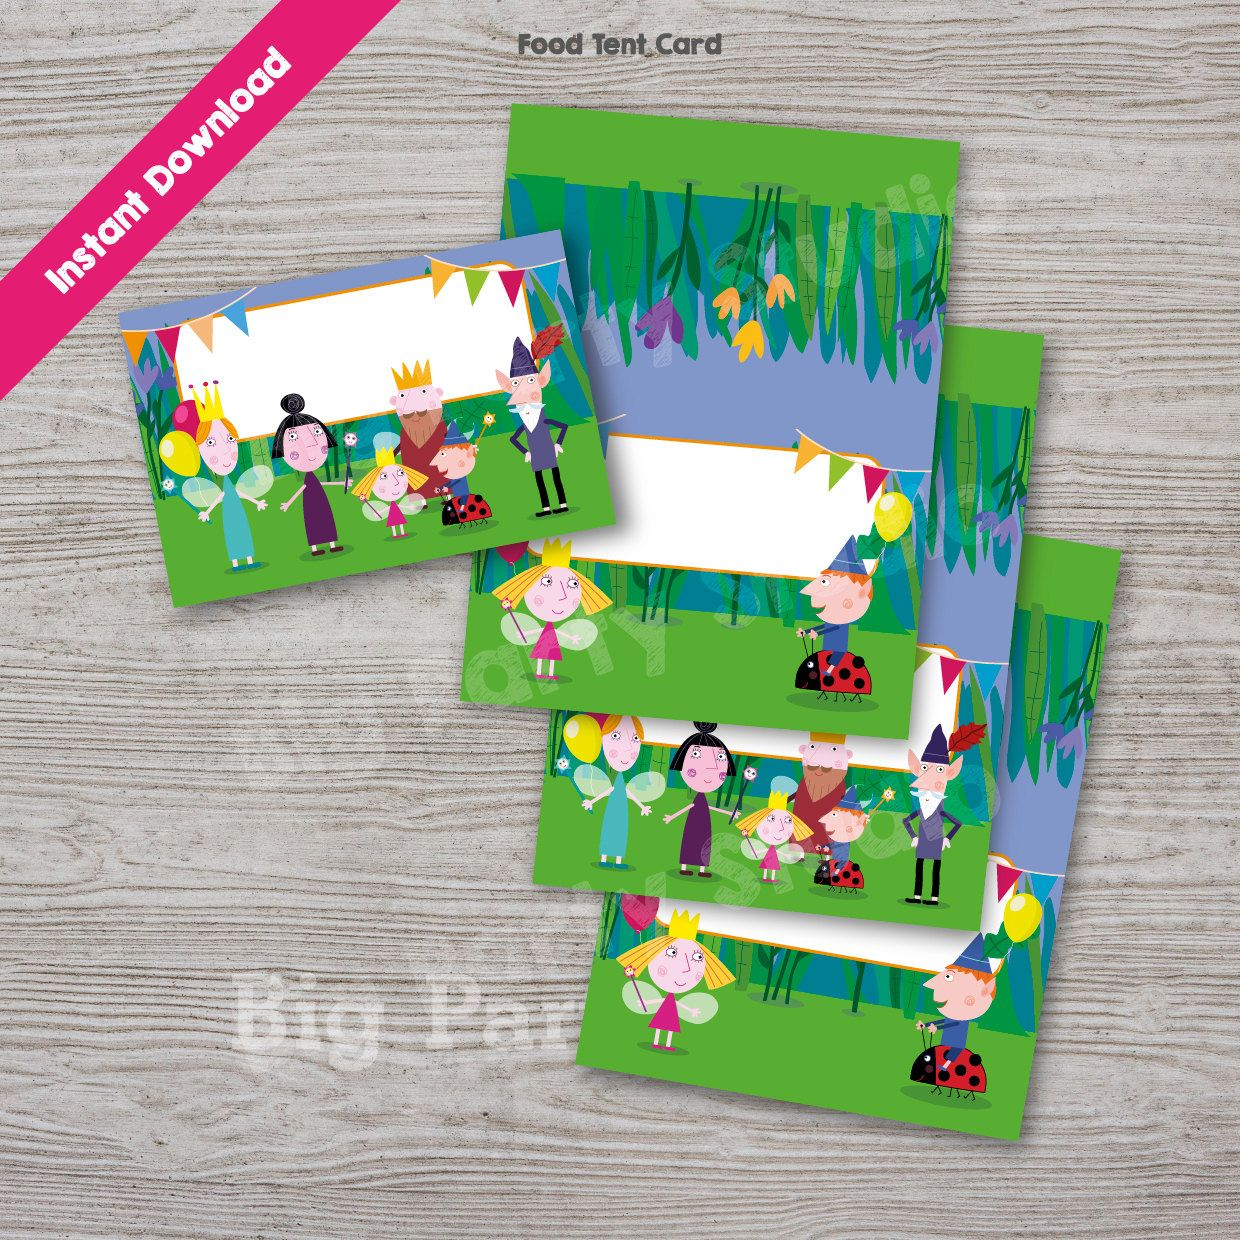 Ben and holly food labels ben holly food tags food tent card ben and holly food labels ben holly food tags food tent card amipublicfo Images